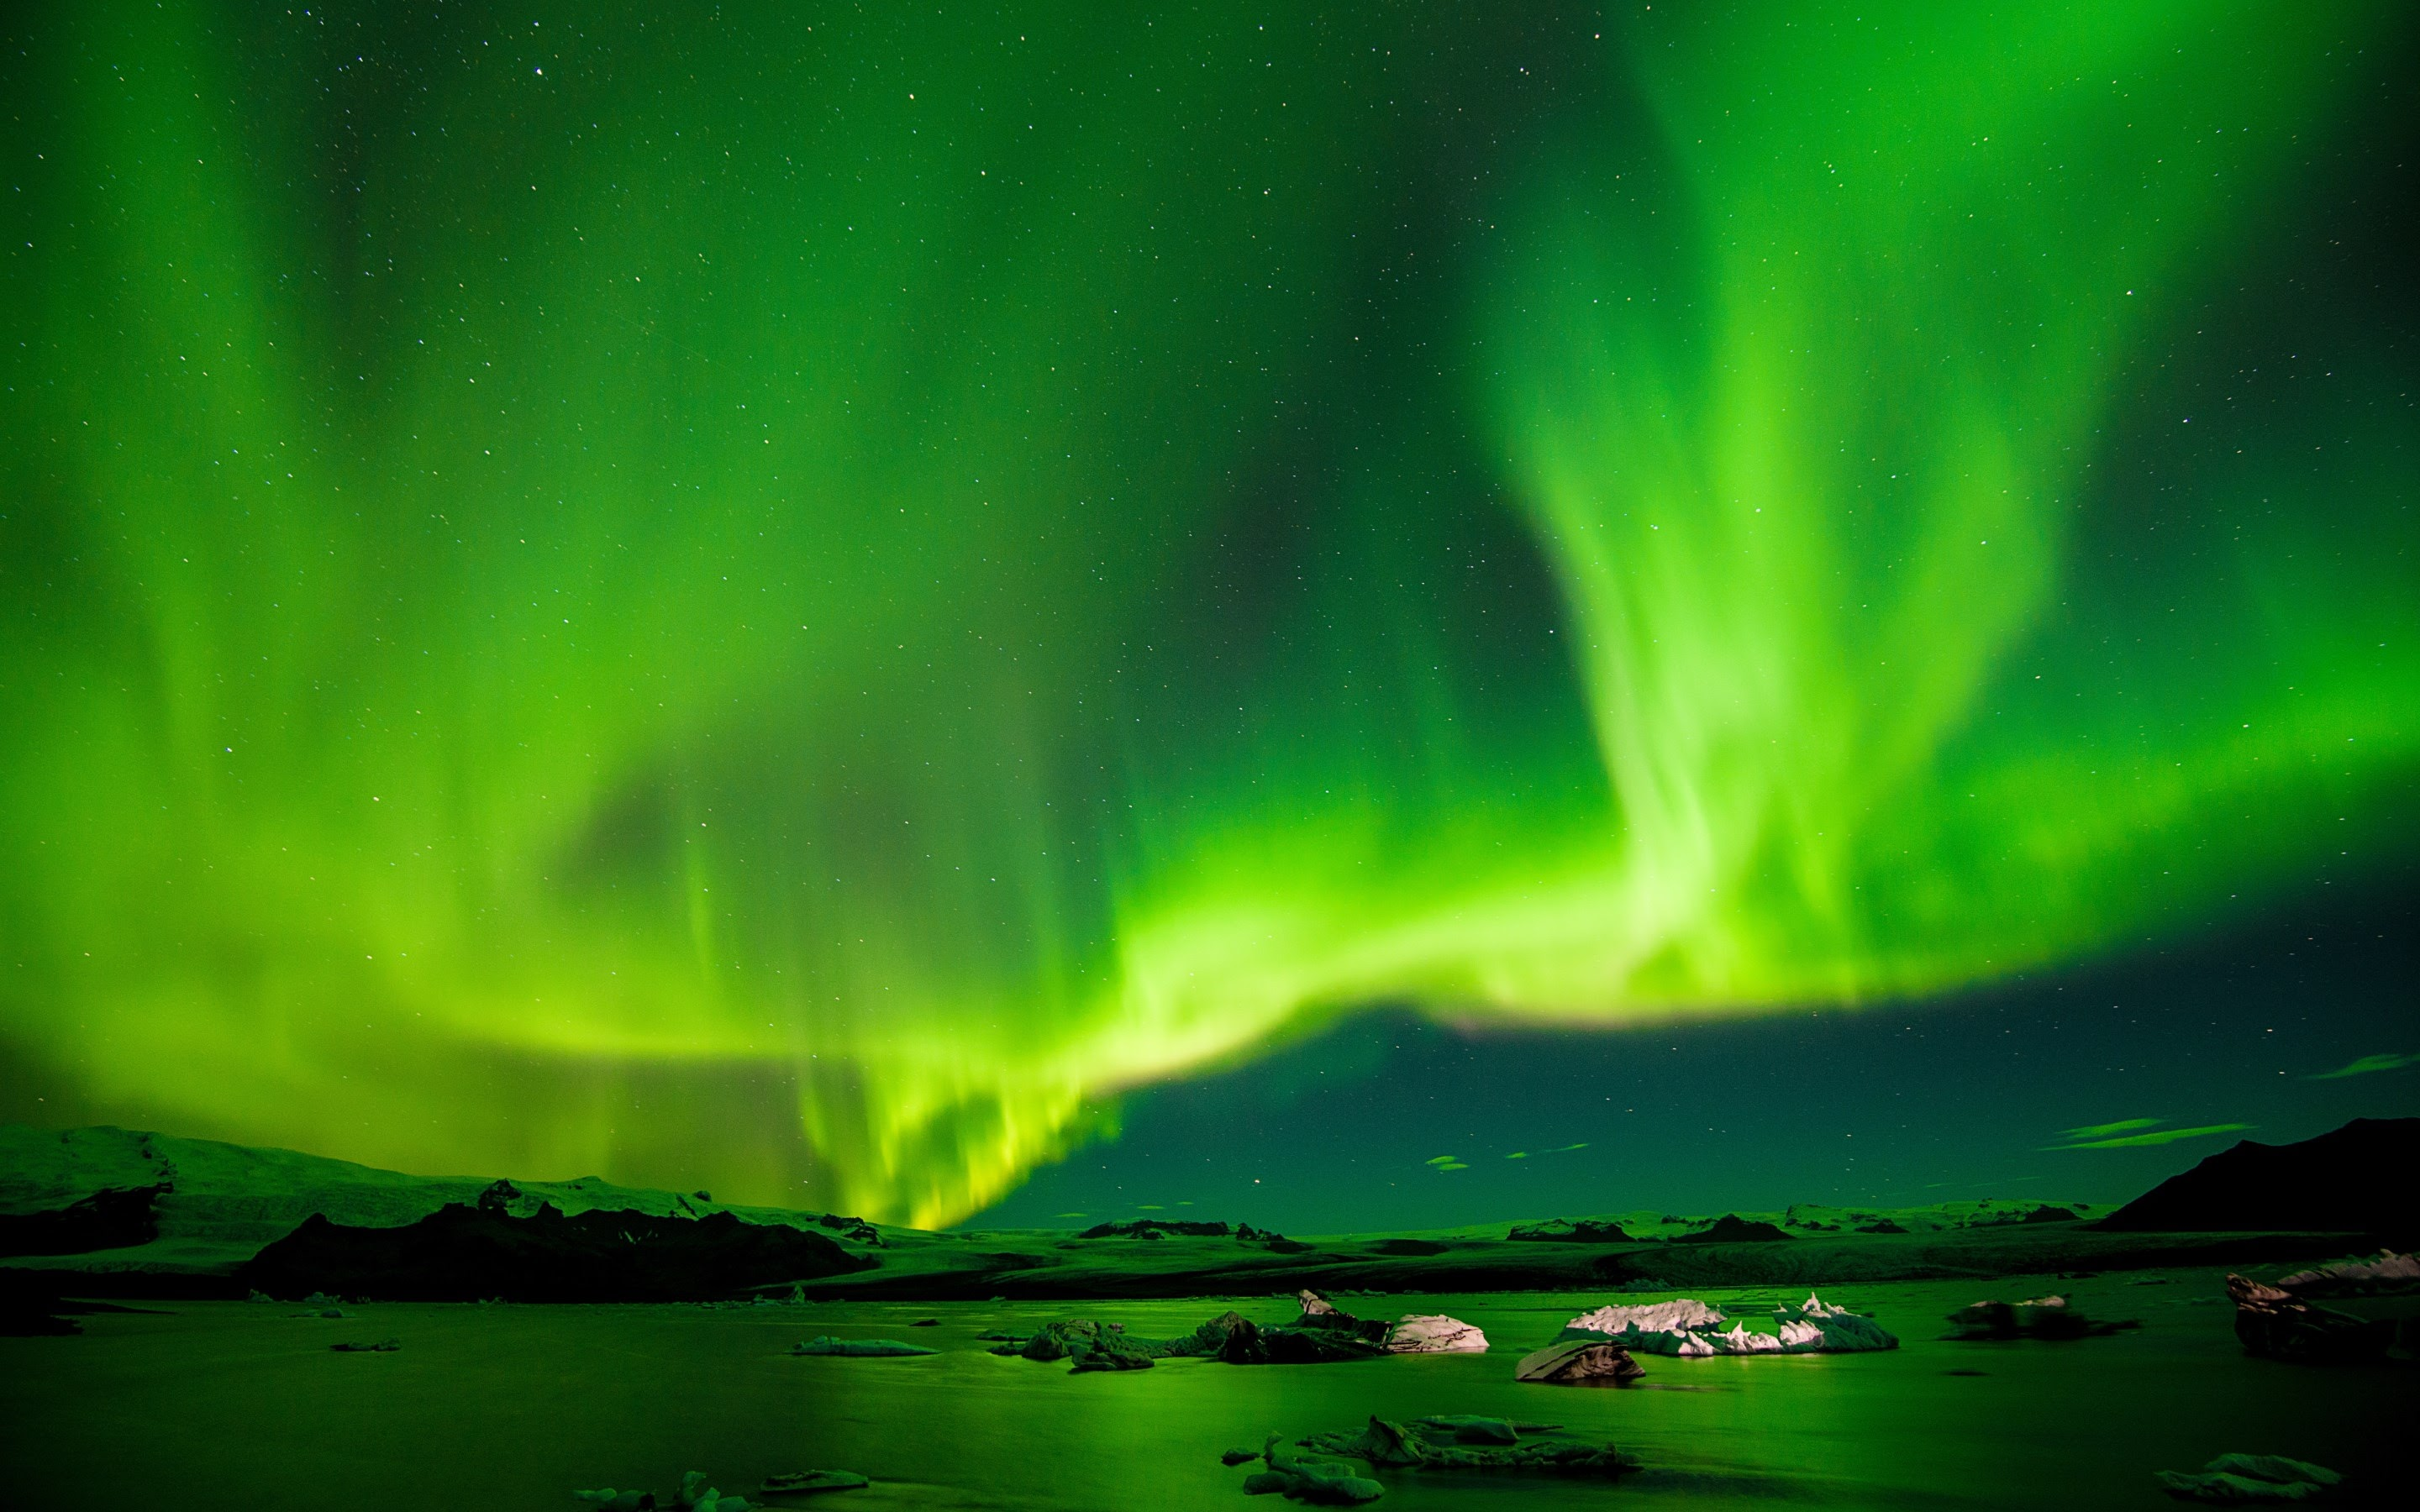 aurora borealis in iceland wallpaper hd wallpapers